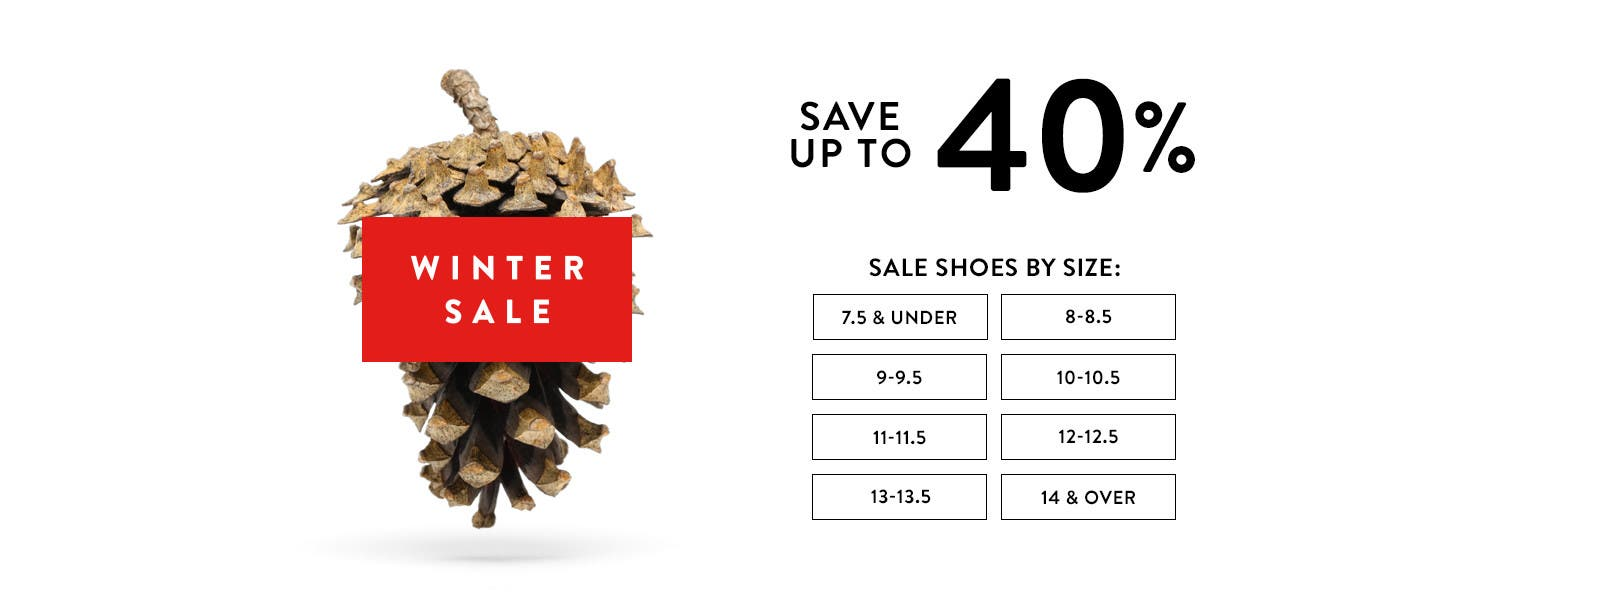 Winter Sale: save up to 40% now through February 26.